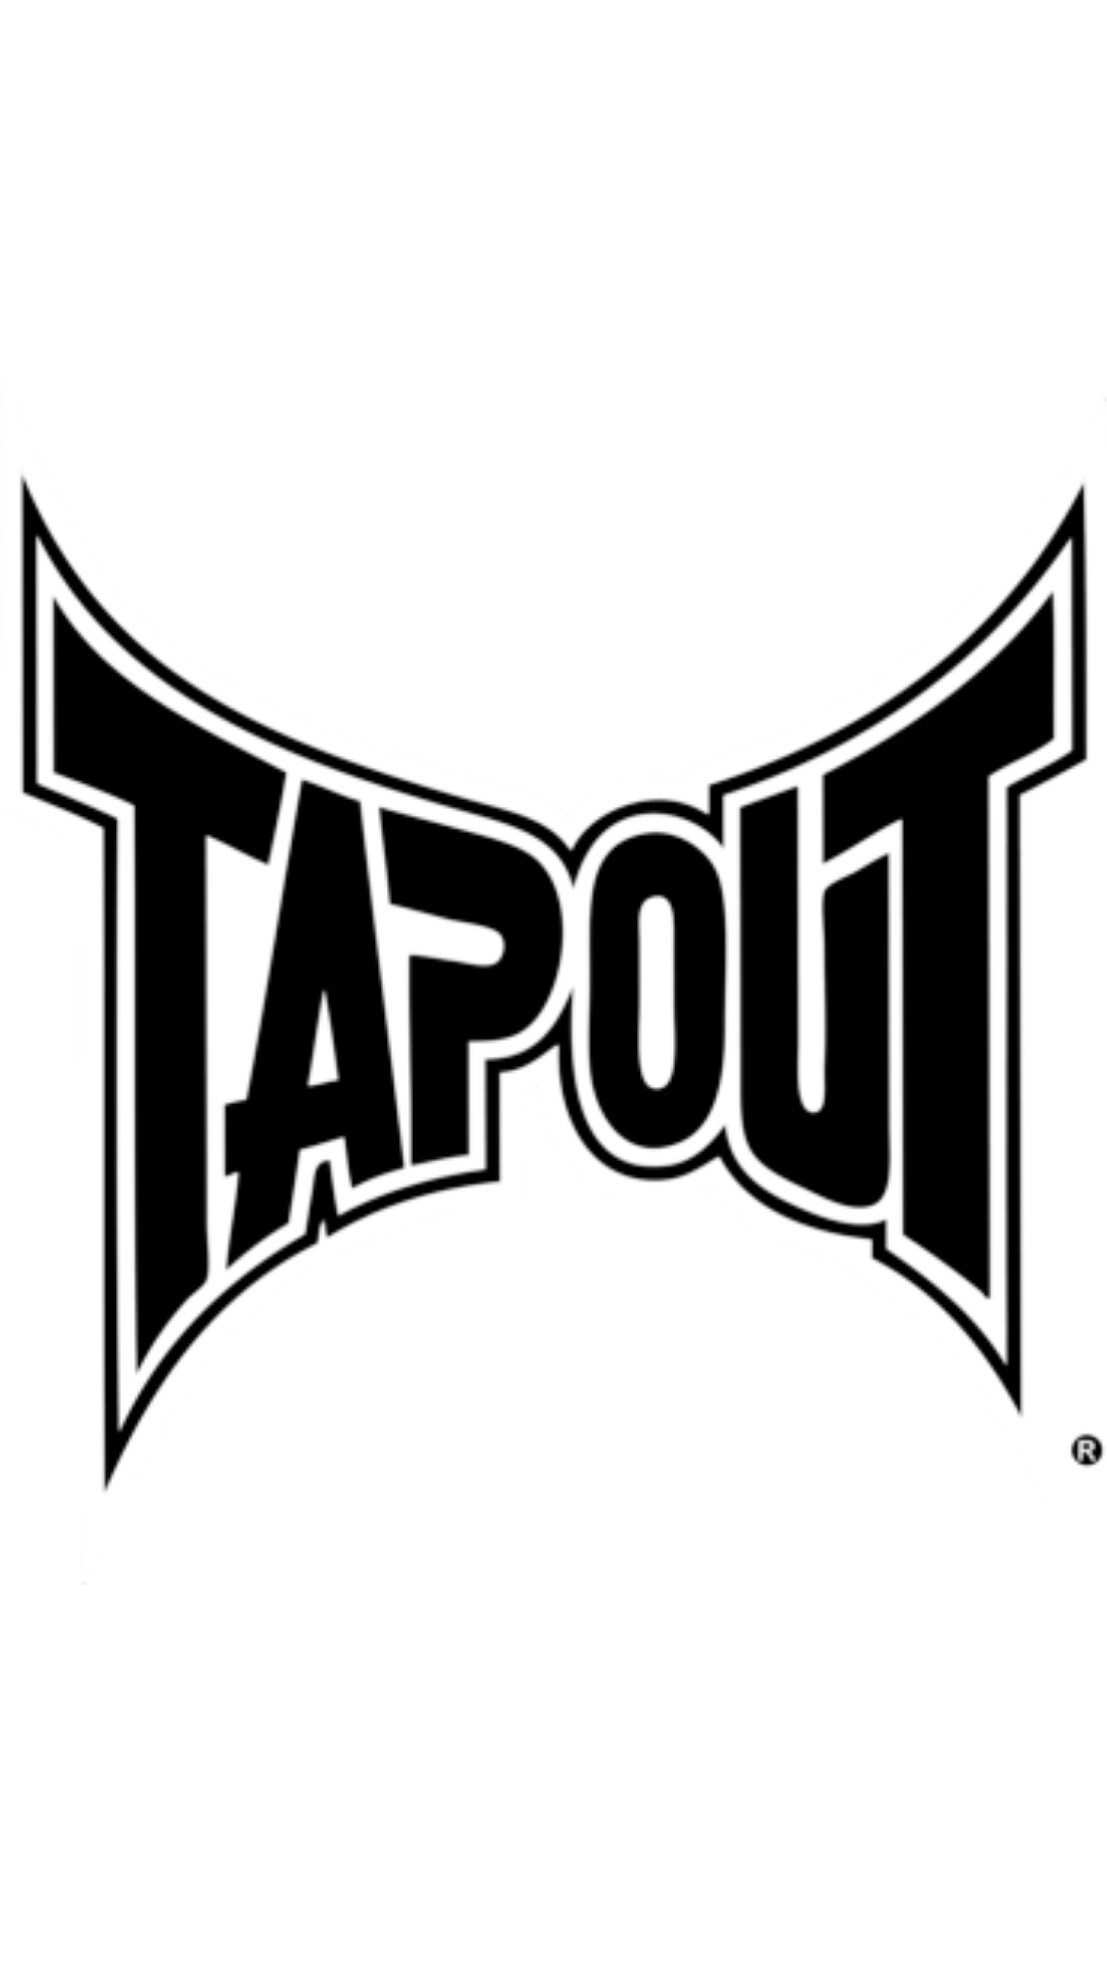 Tapout Wallpapers 55 Images